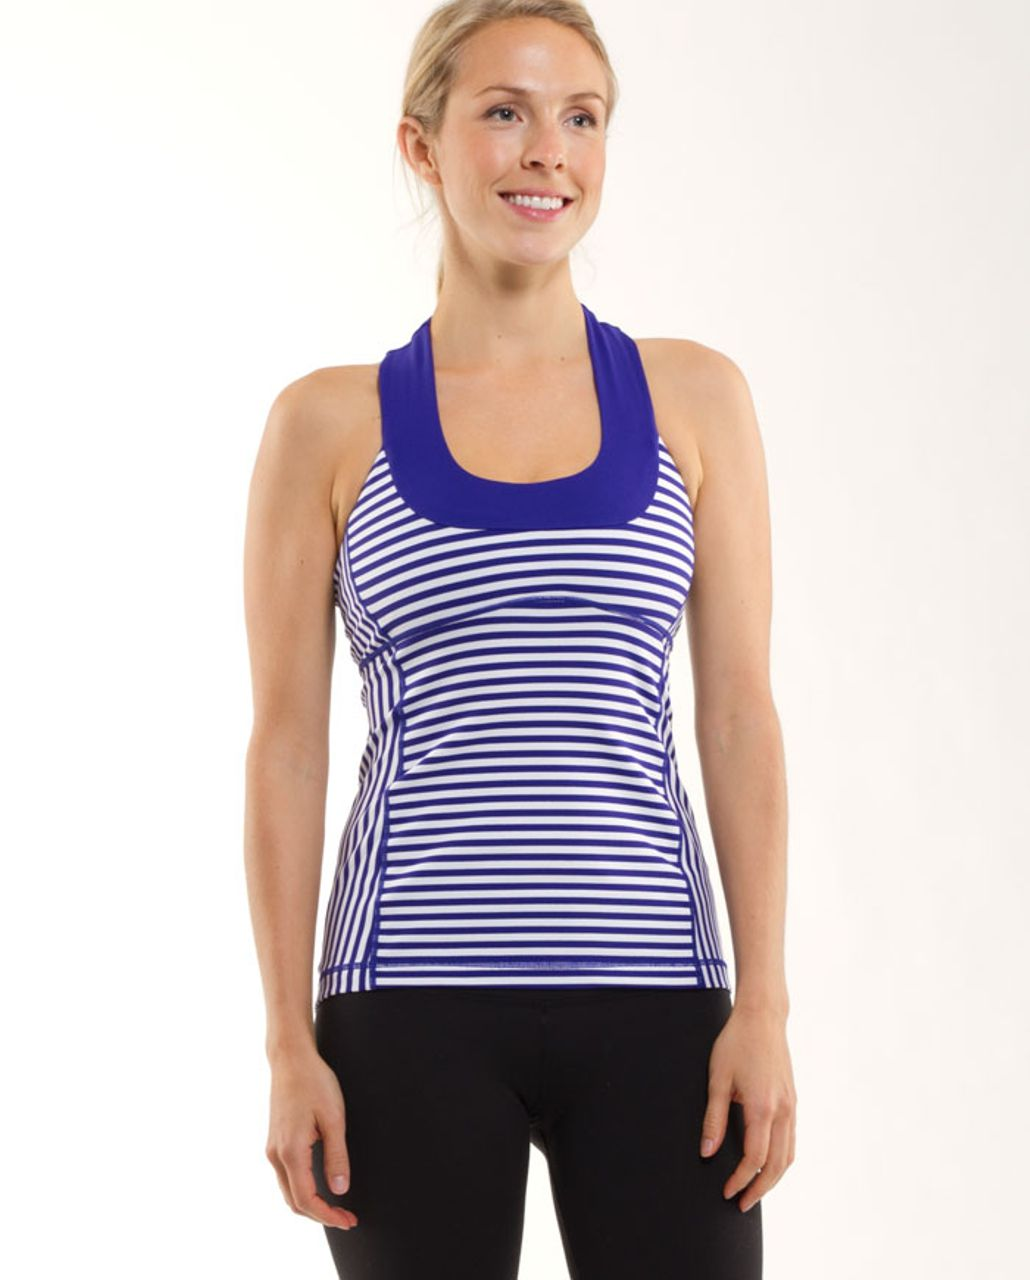 Lululemon Scoop Neck Tank - Pigment Blue White Narrow Bold Stripe /  Pigment Blue